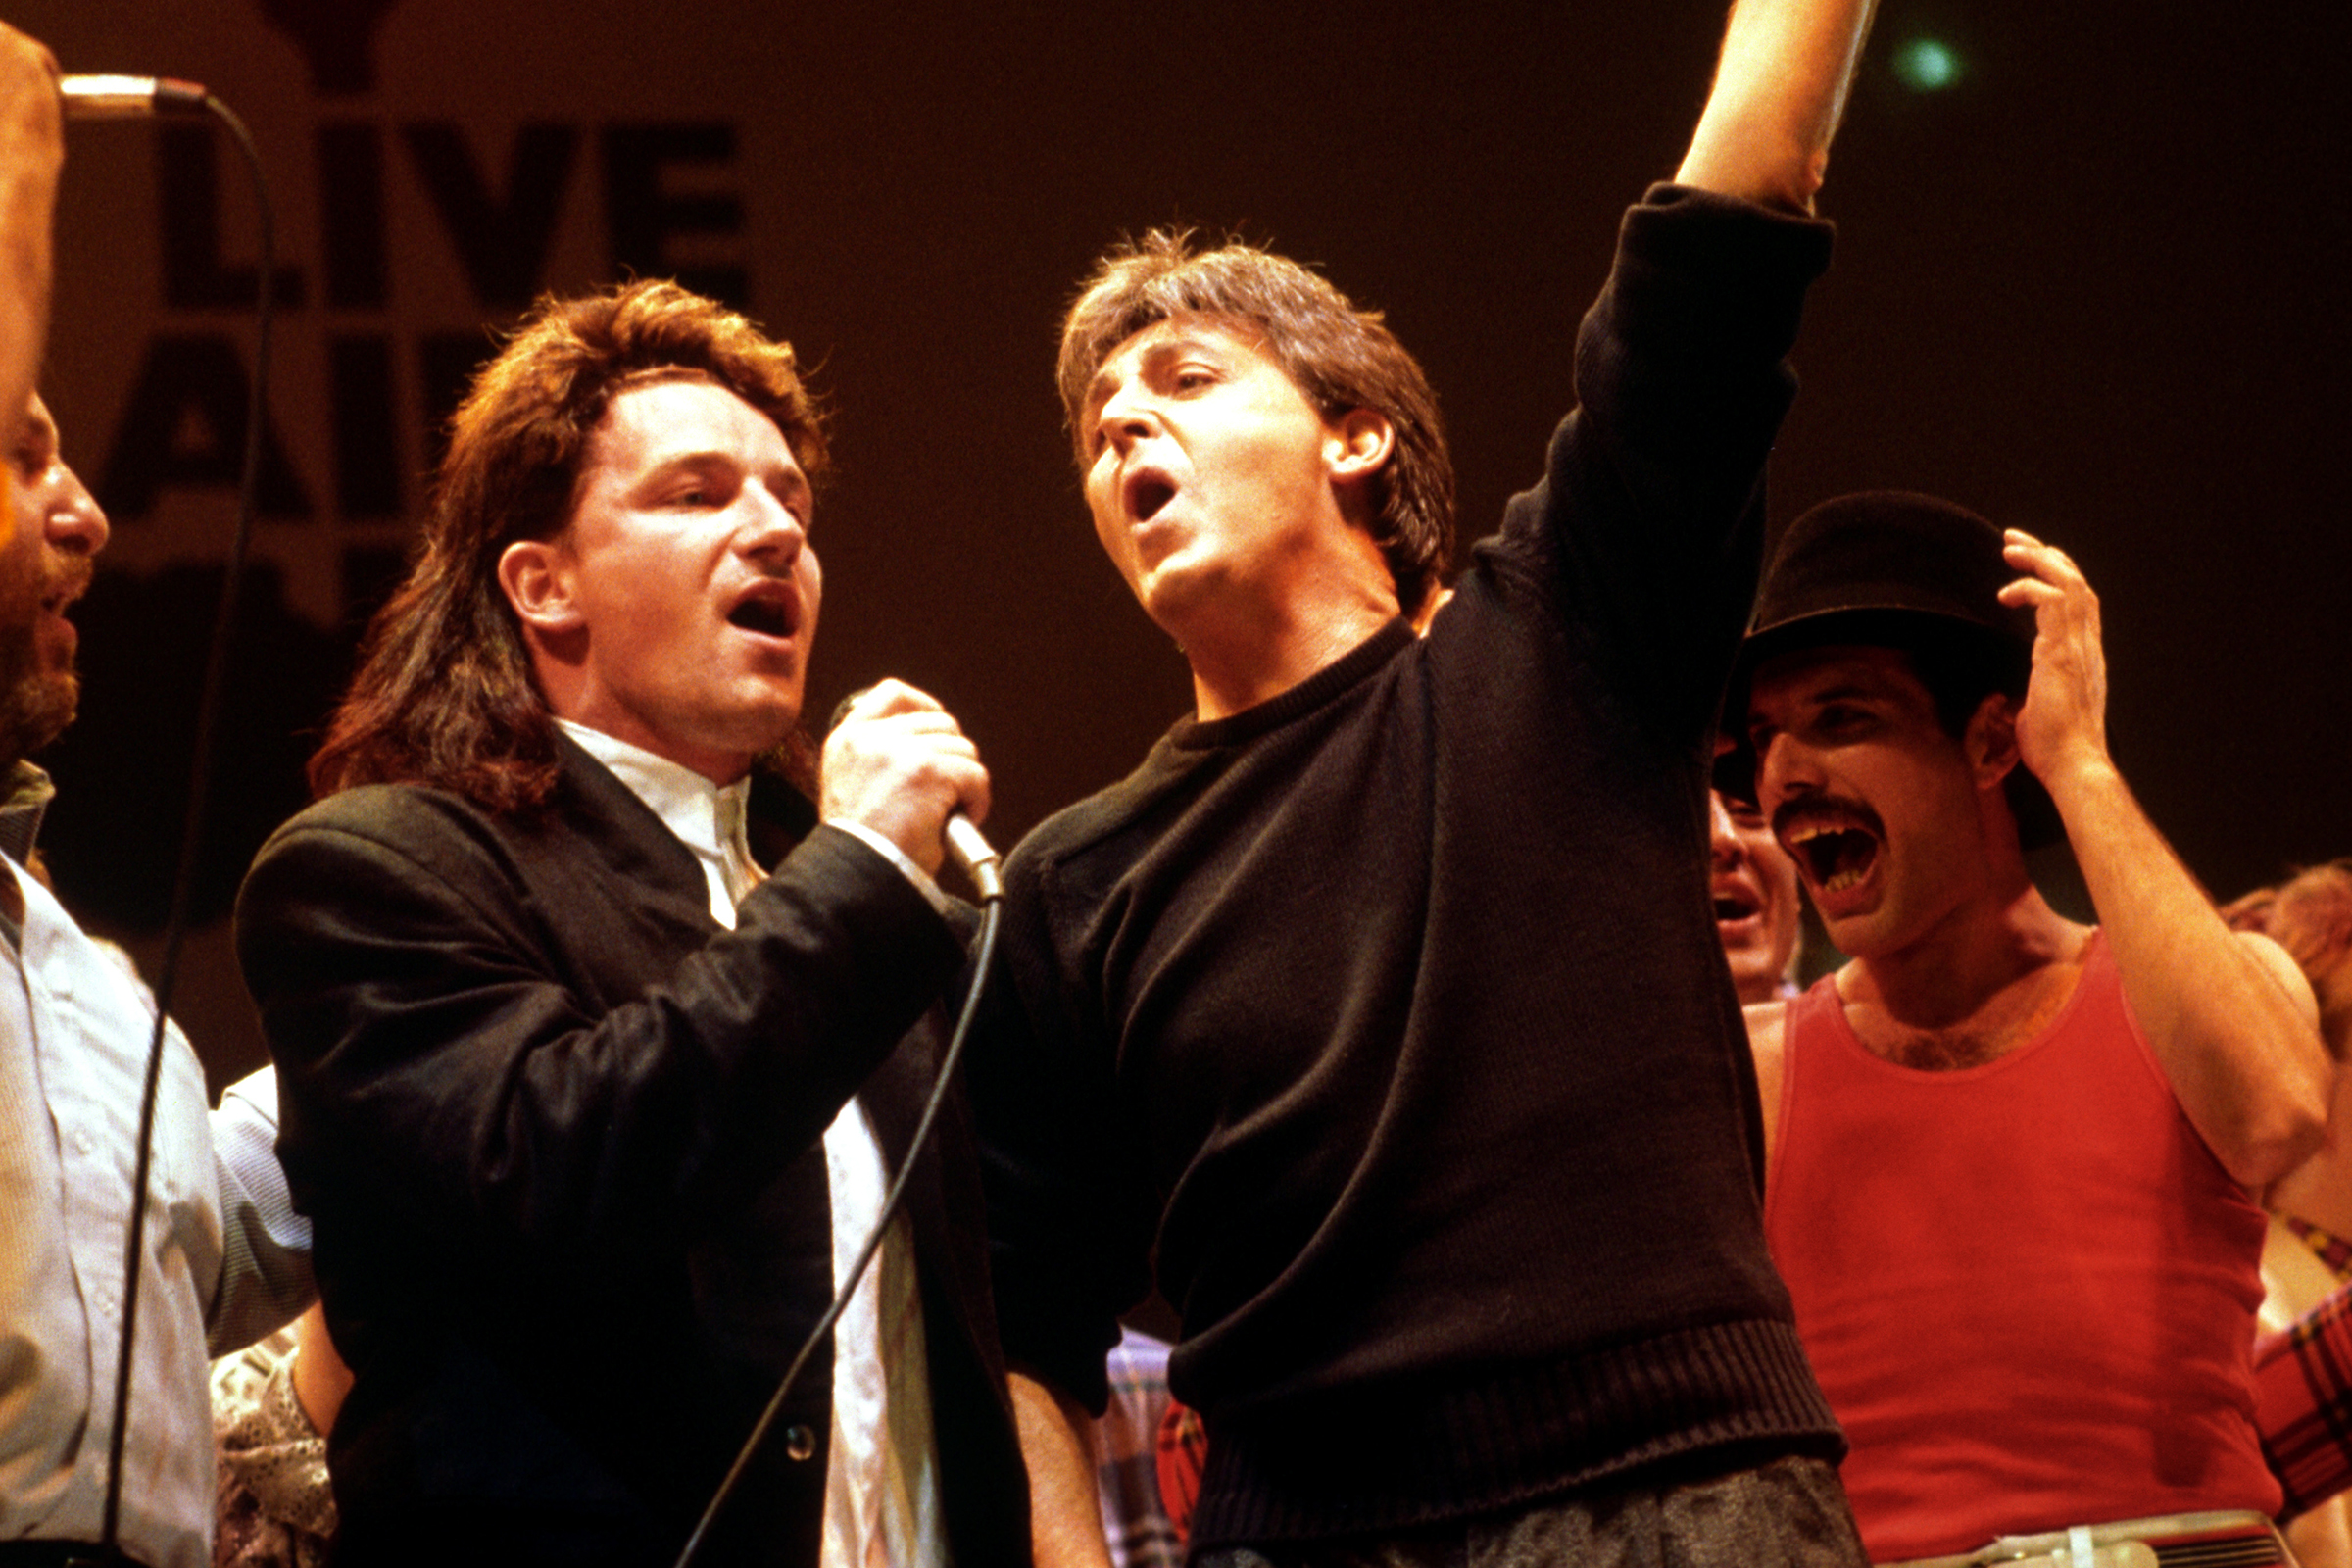 The Summer of '85: Relive the 11 Biggest Musical Moments